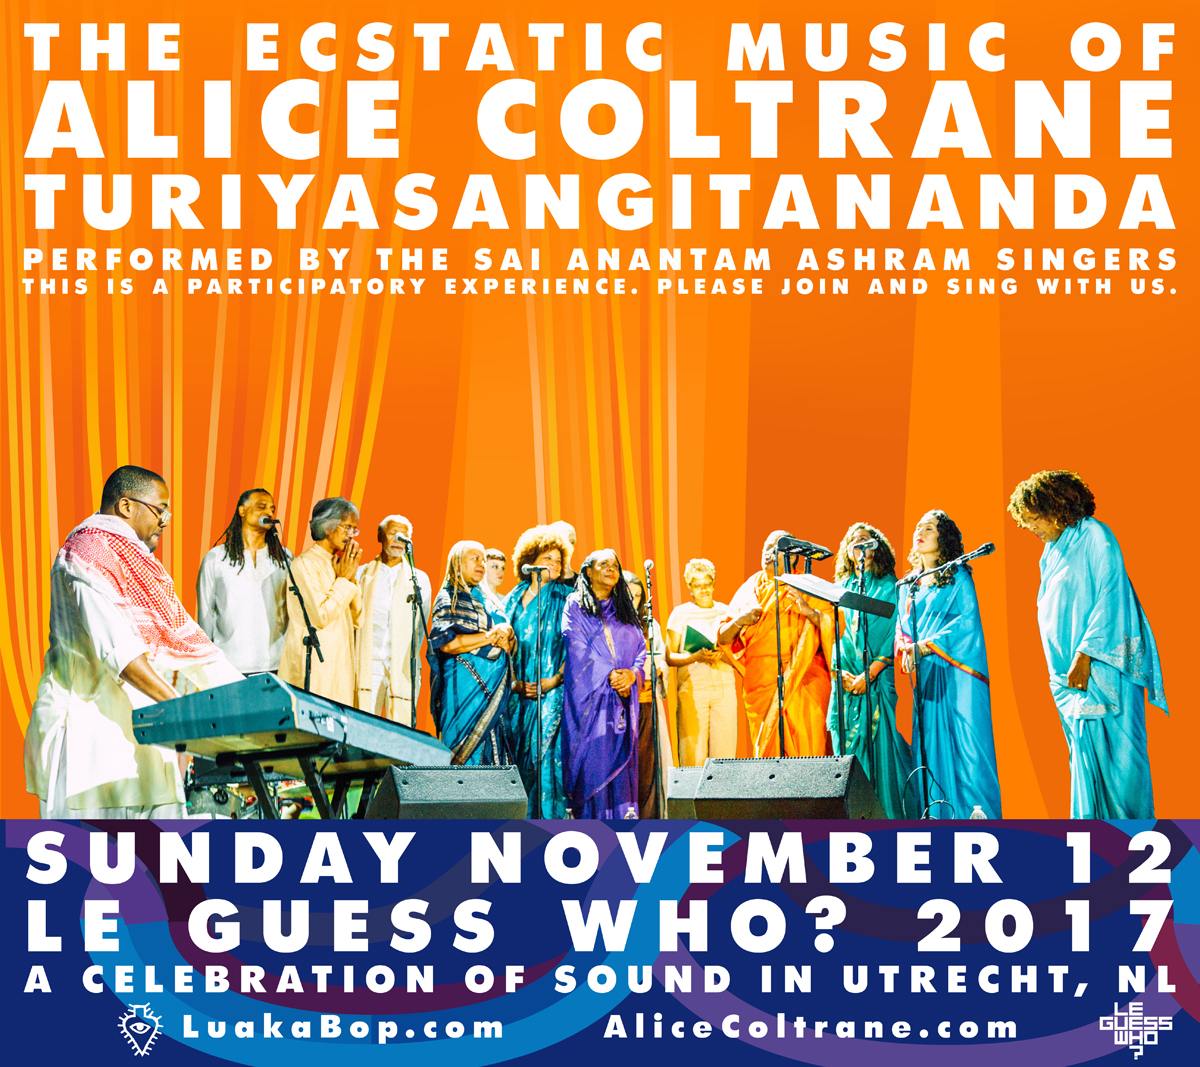 Honoring the life & work of Alice Coltrane with a participatory experience at LGW17